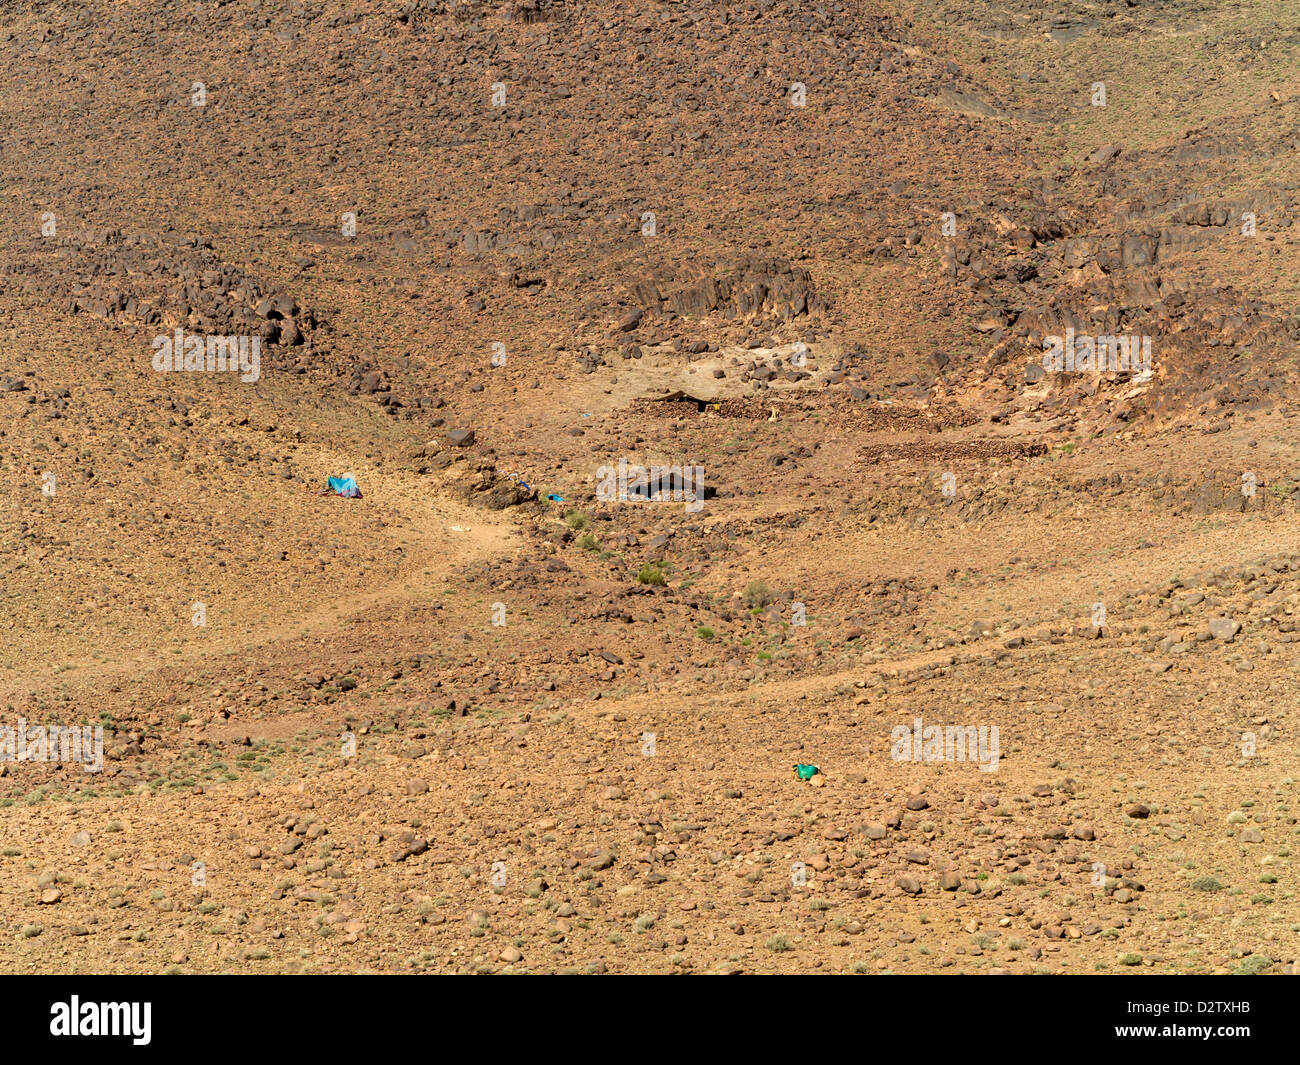 Homes and settlements of Berber nomads in the hills in Boughrar Valley, Morocco, North Africa - Stock Image